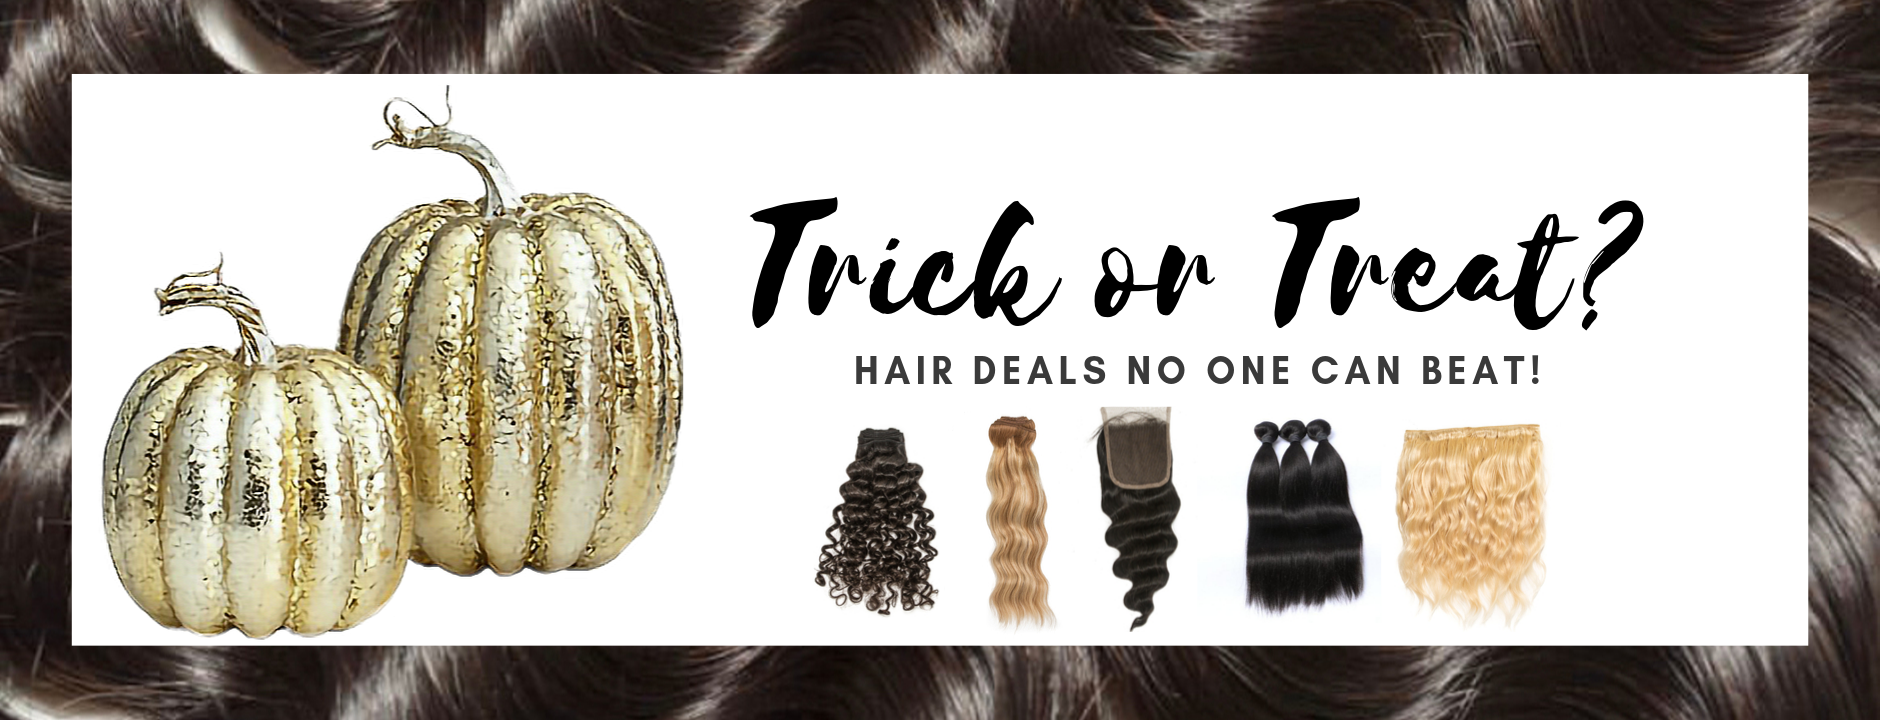 Hair Are Us halloween with gold pumpkins displays pony tails hair extensions closures bundles blond weft hair with highlights for halloween looks